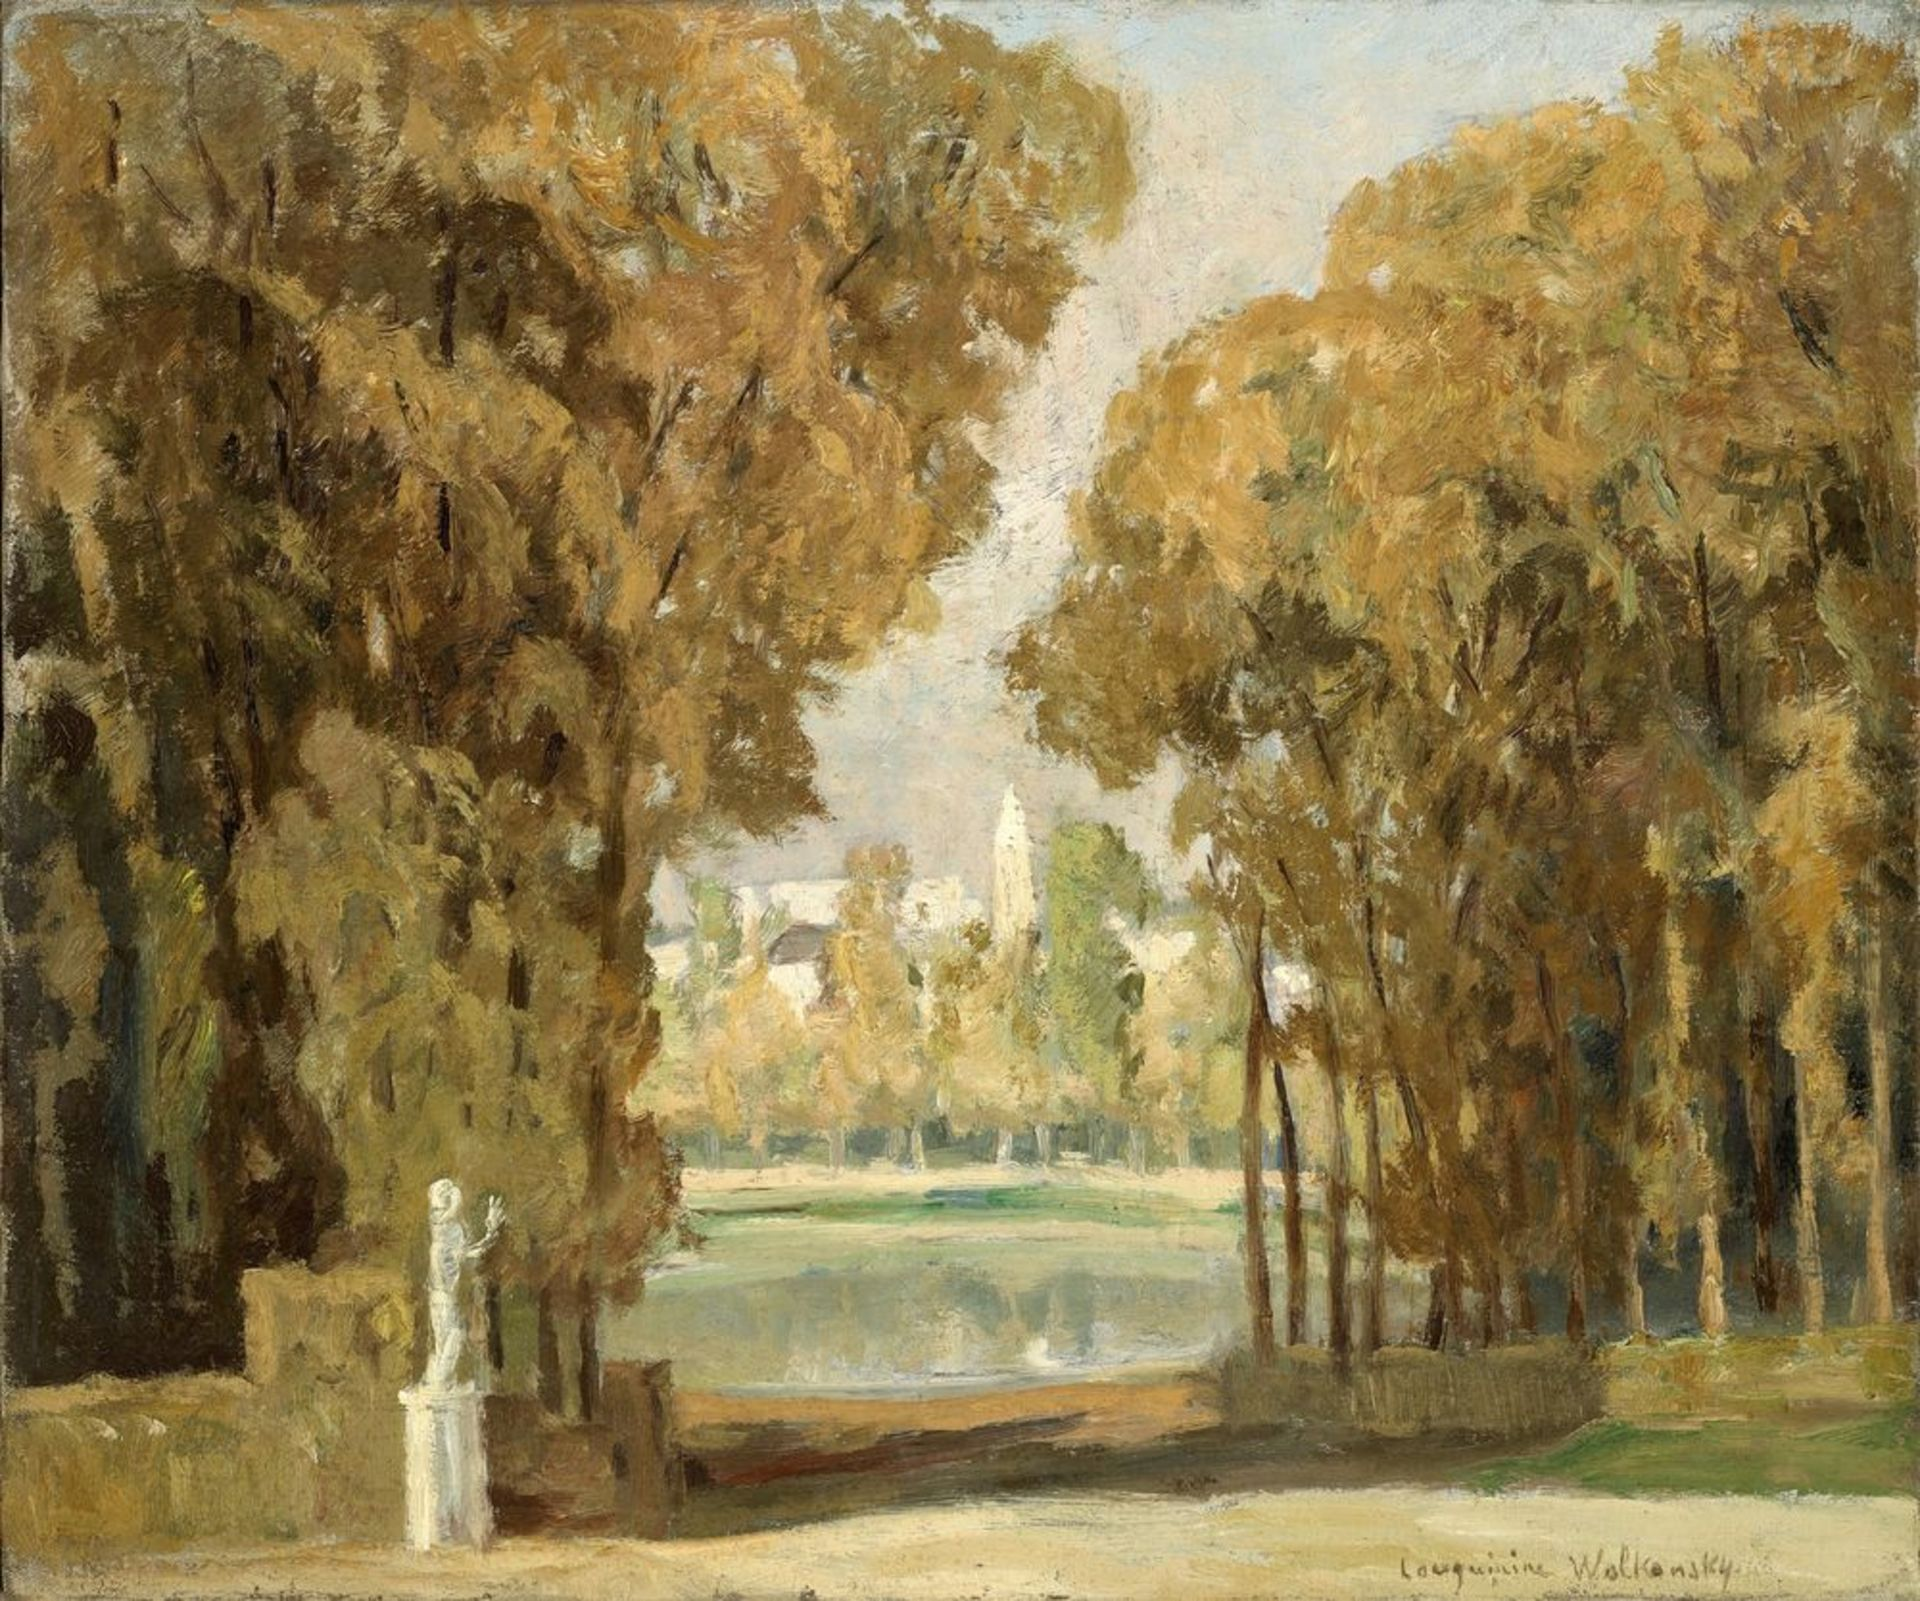 Los 49 - Marie LOUGUININE-WOLKONSKY (1875-1960) - Park in early fall signed 'Louguinine [...]